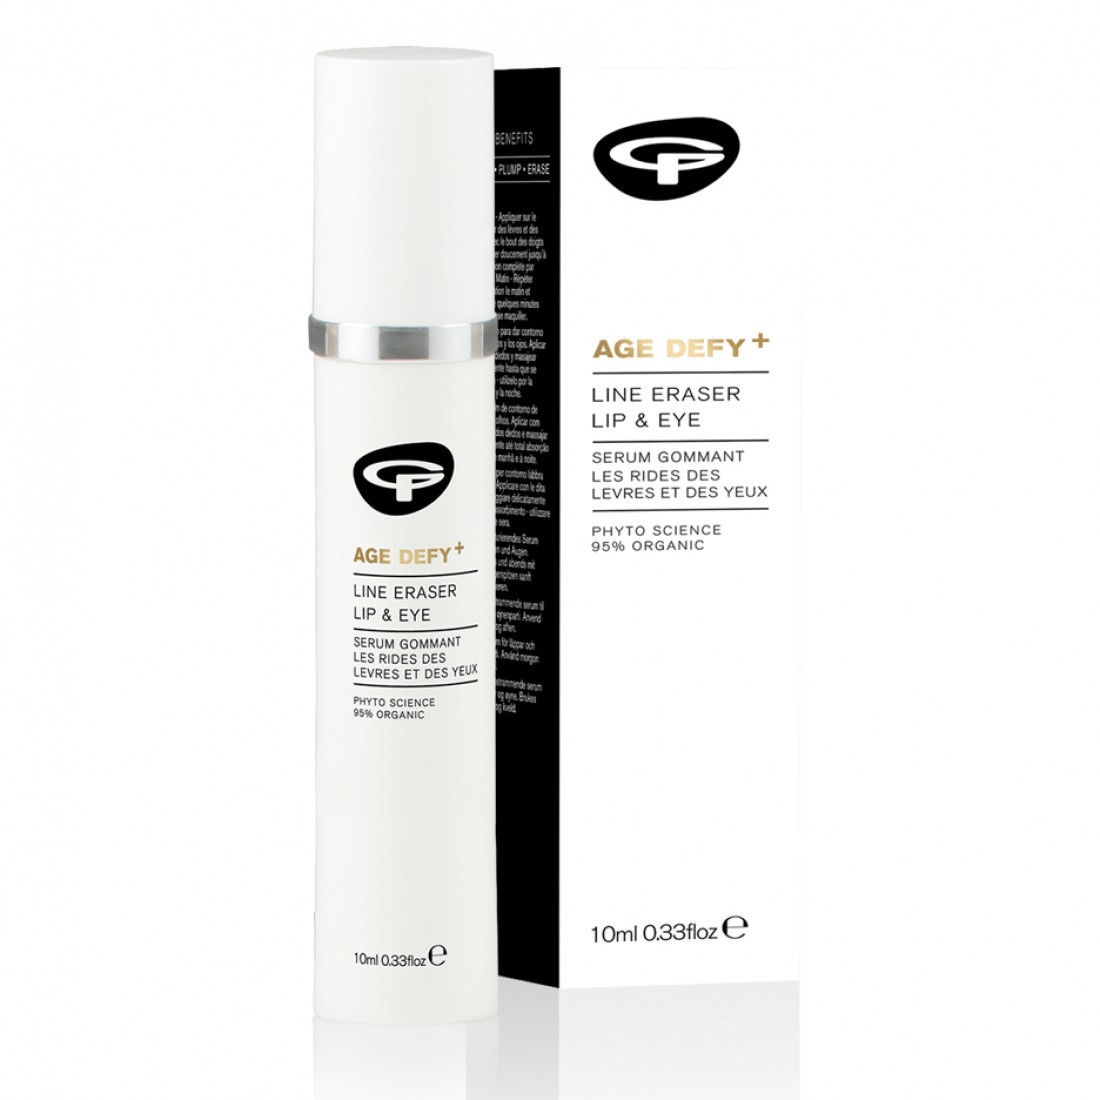 Age Defy+ Line Eraser Lip and Eye Serum